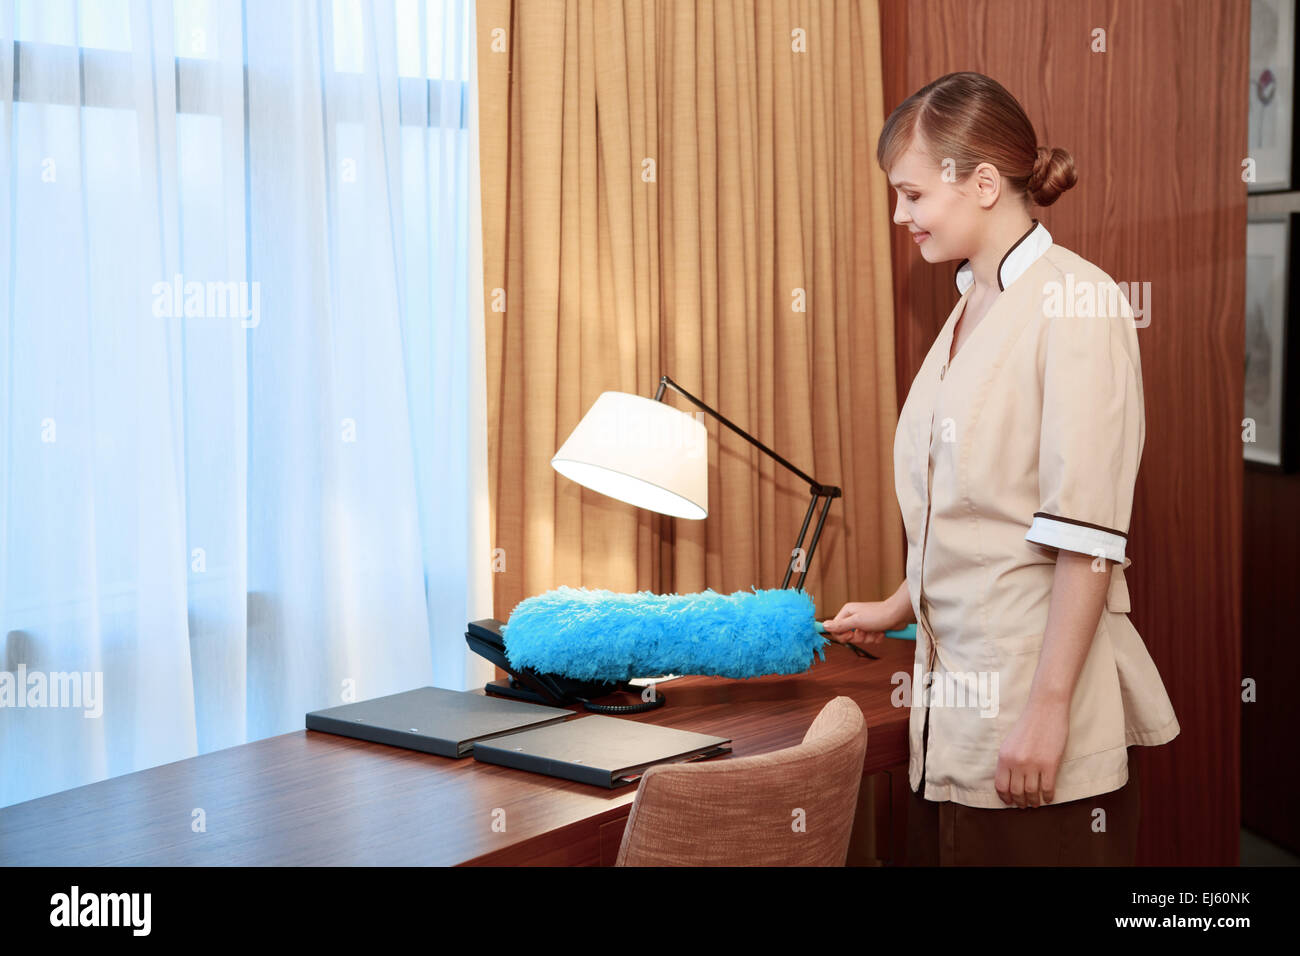 dusting furniture. Hotel Maid Dusting Furniture - Stock Image O